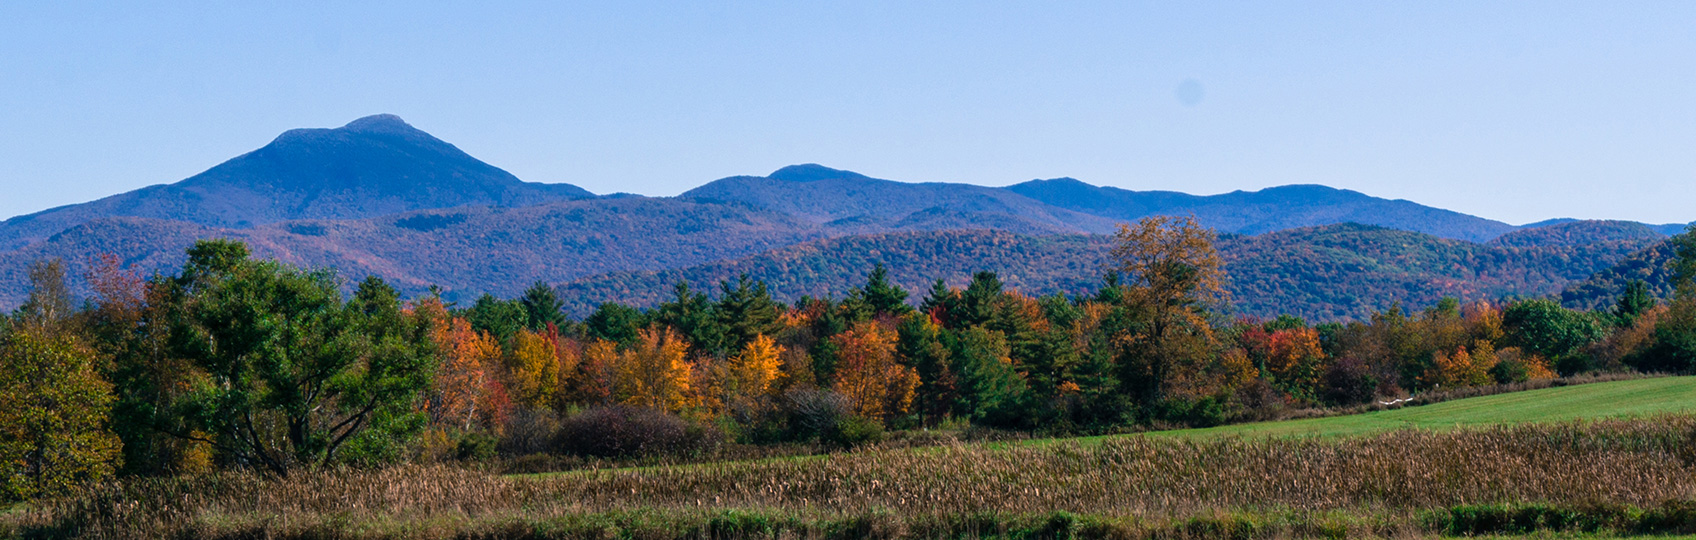 chittenden county vt land for sale